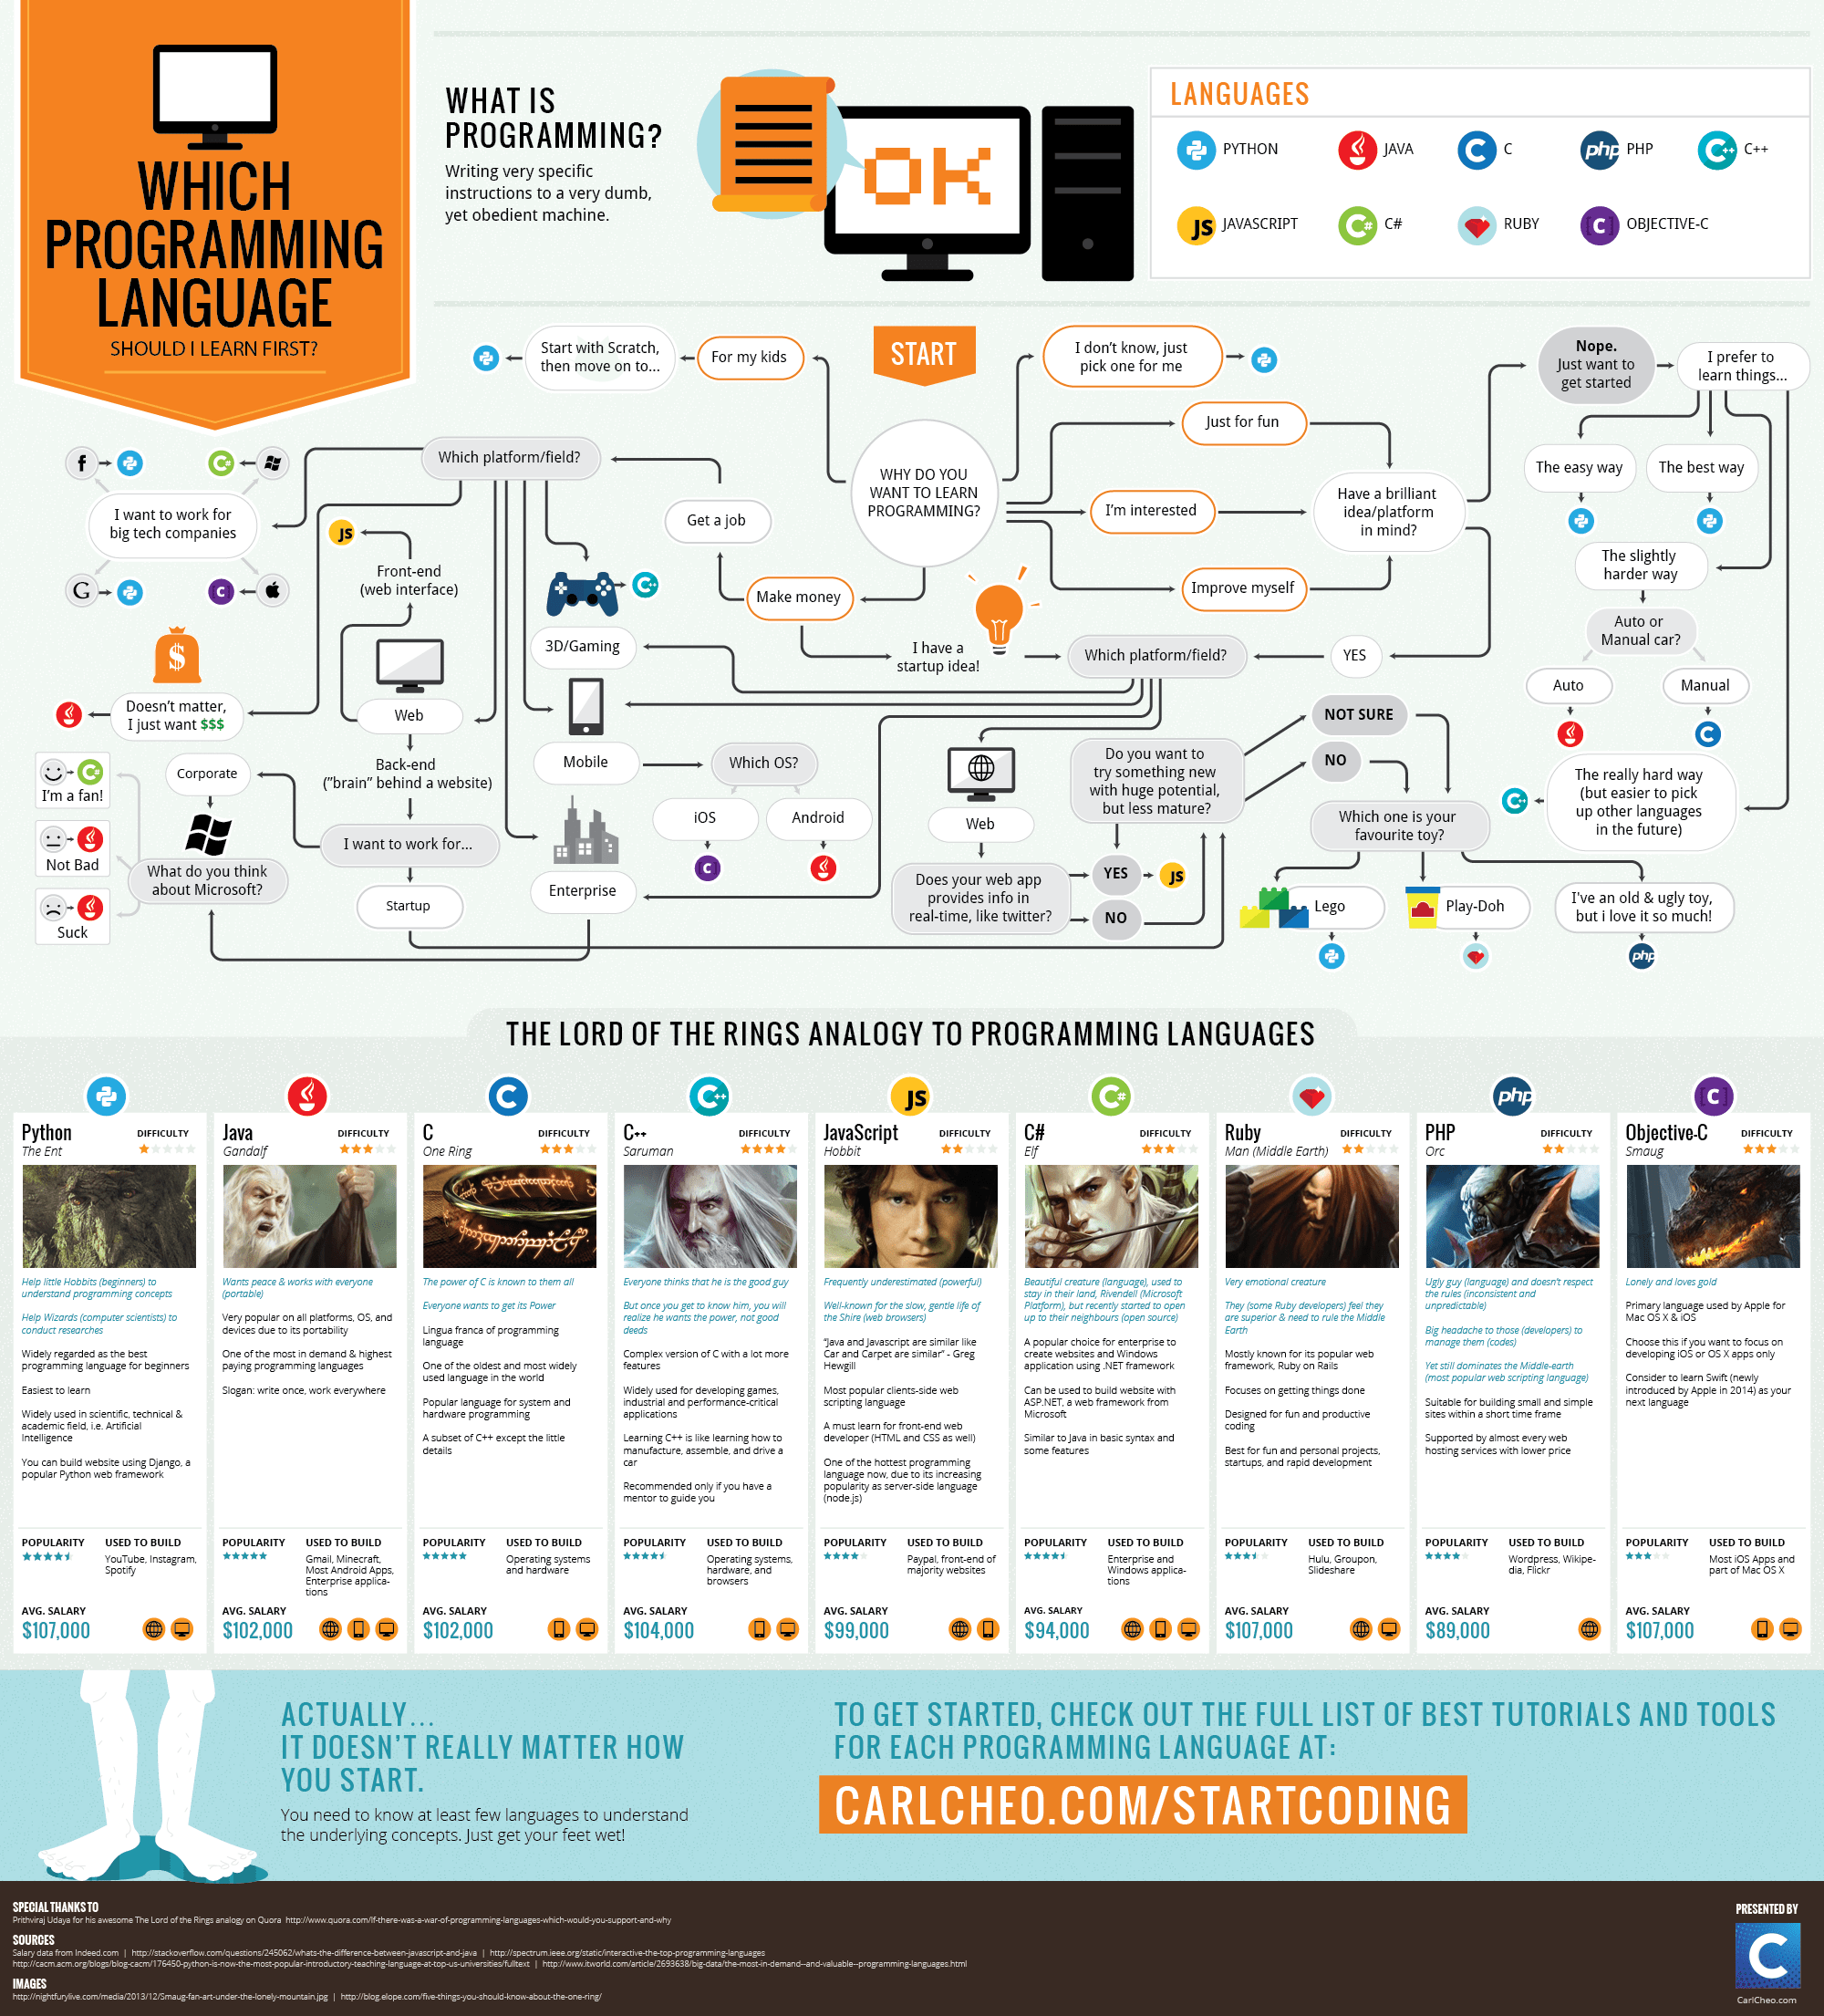 Infographic: Which Programming Language Should I Learn First